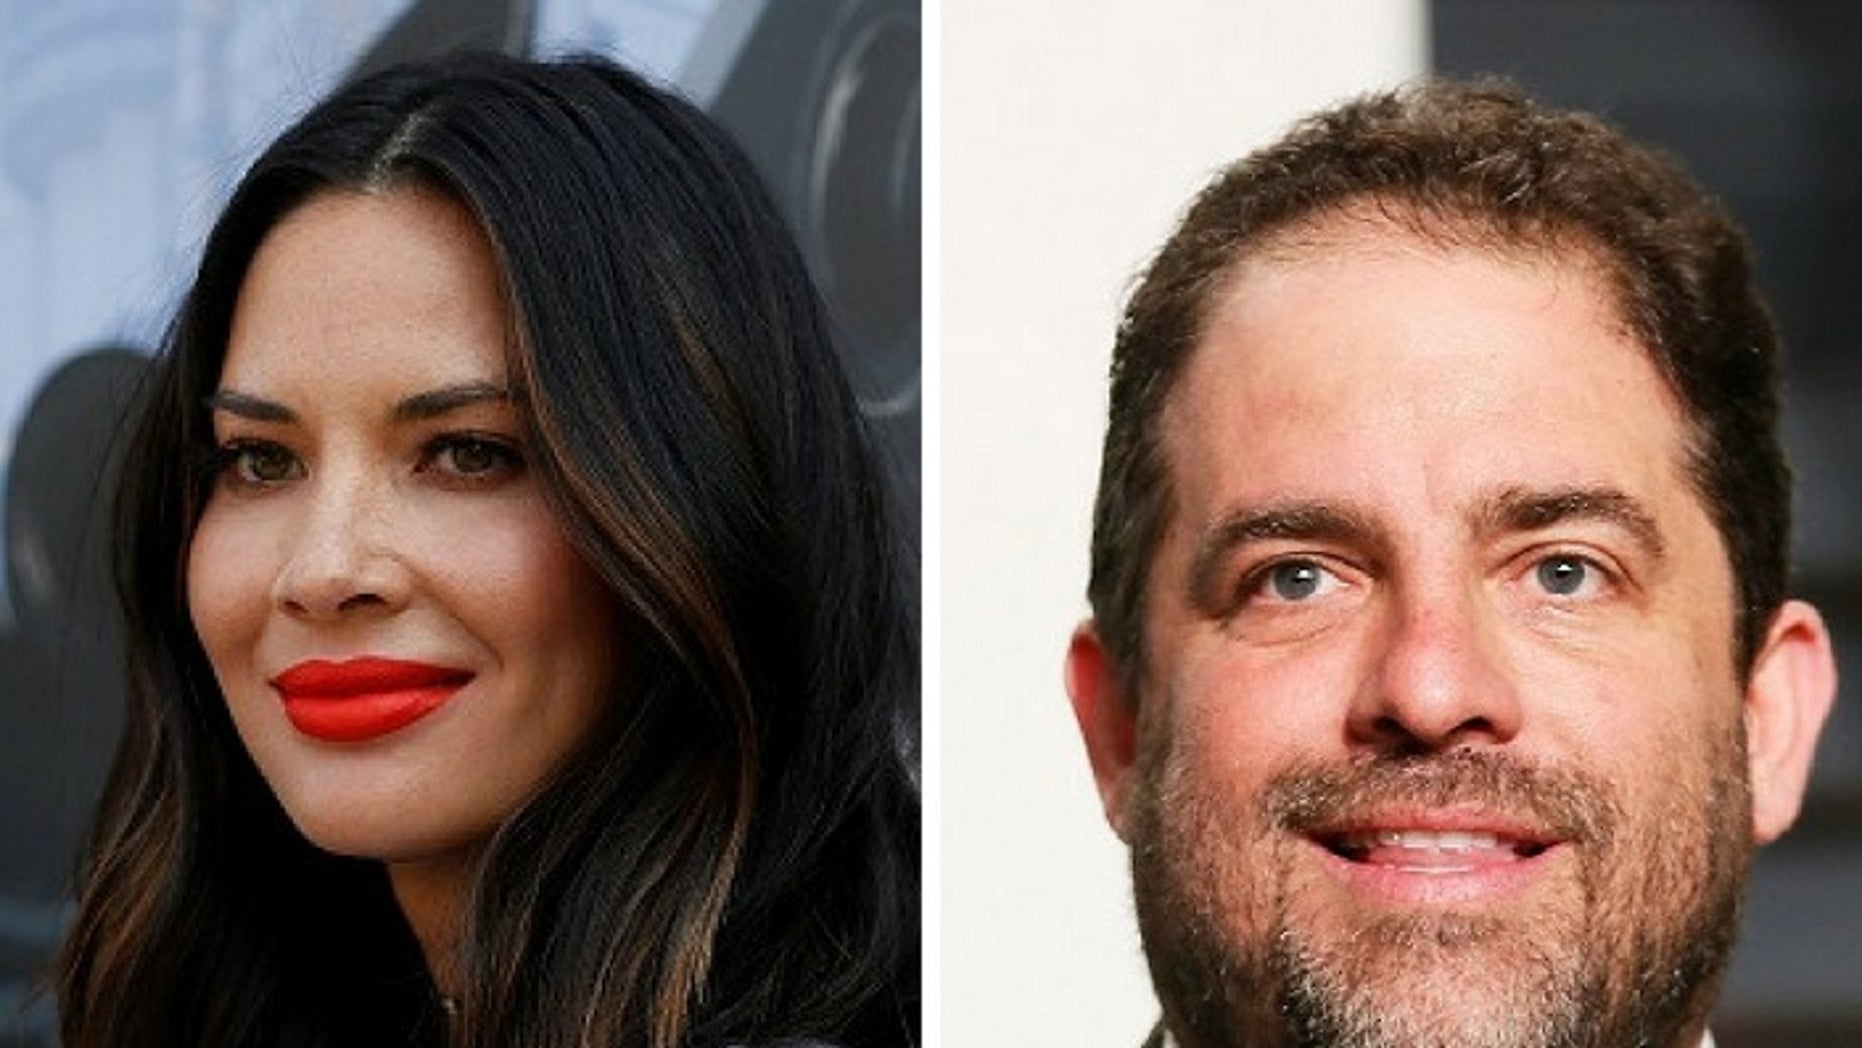 Actress Olivia Munn and five other women came forward to accuse director Brett Ratner of sexual misconduct and harassment.